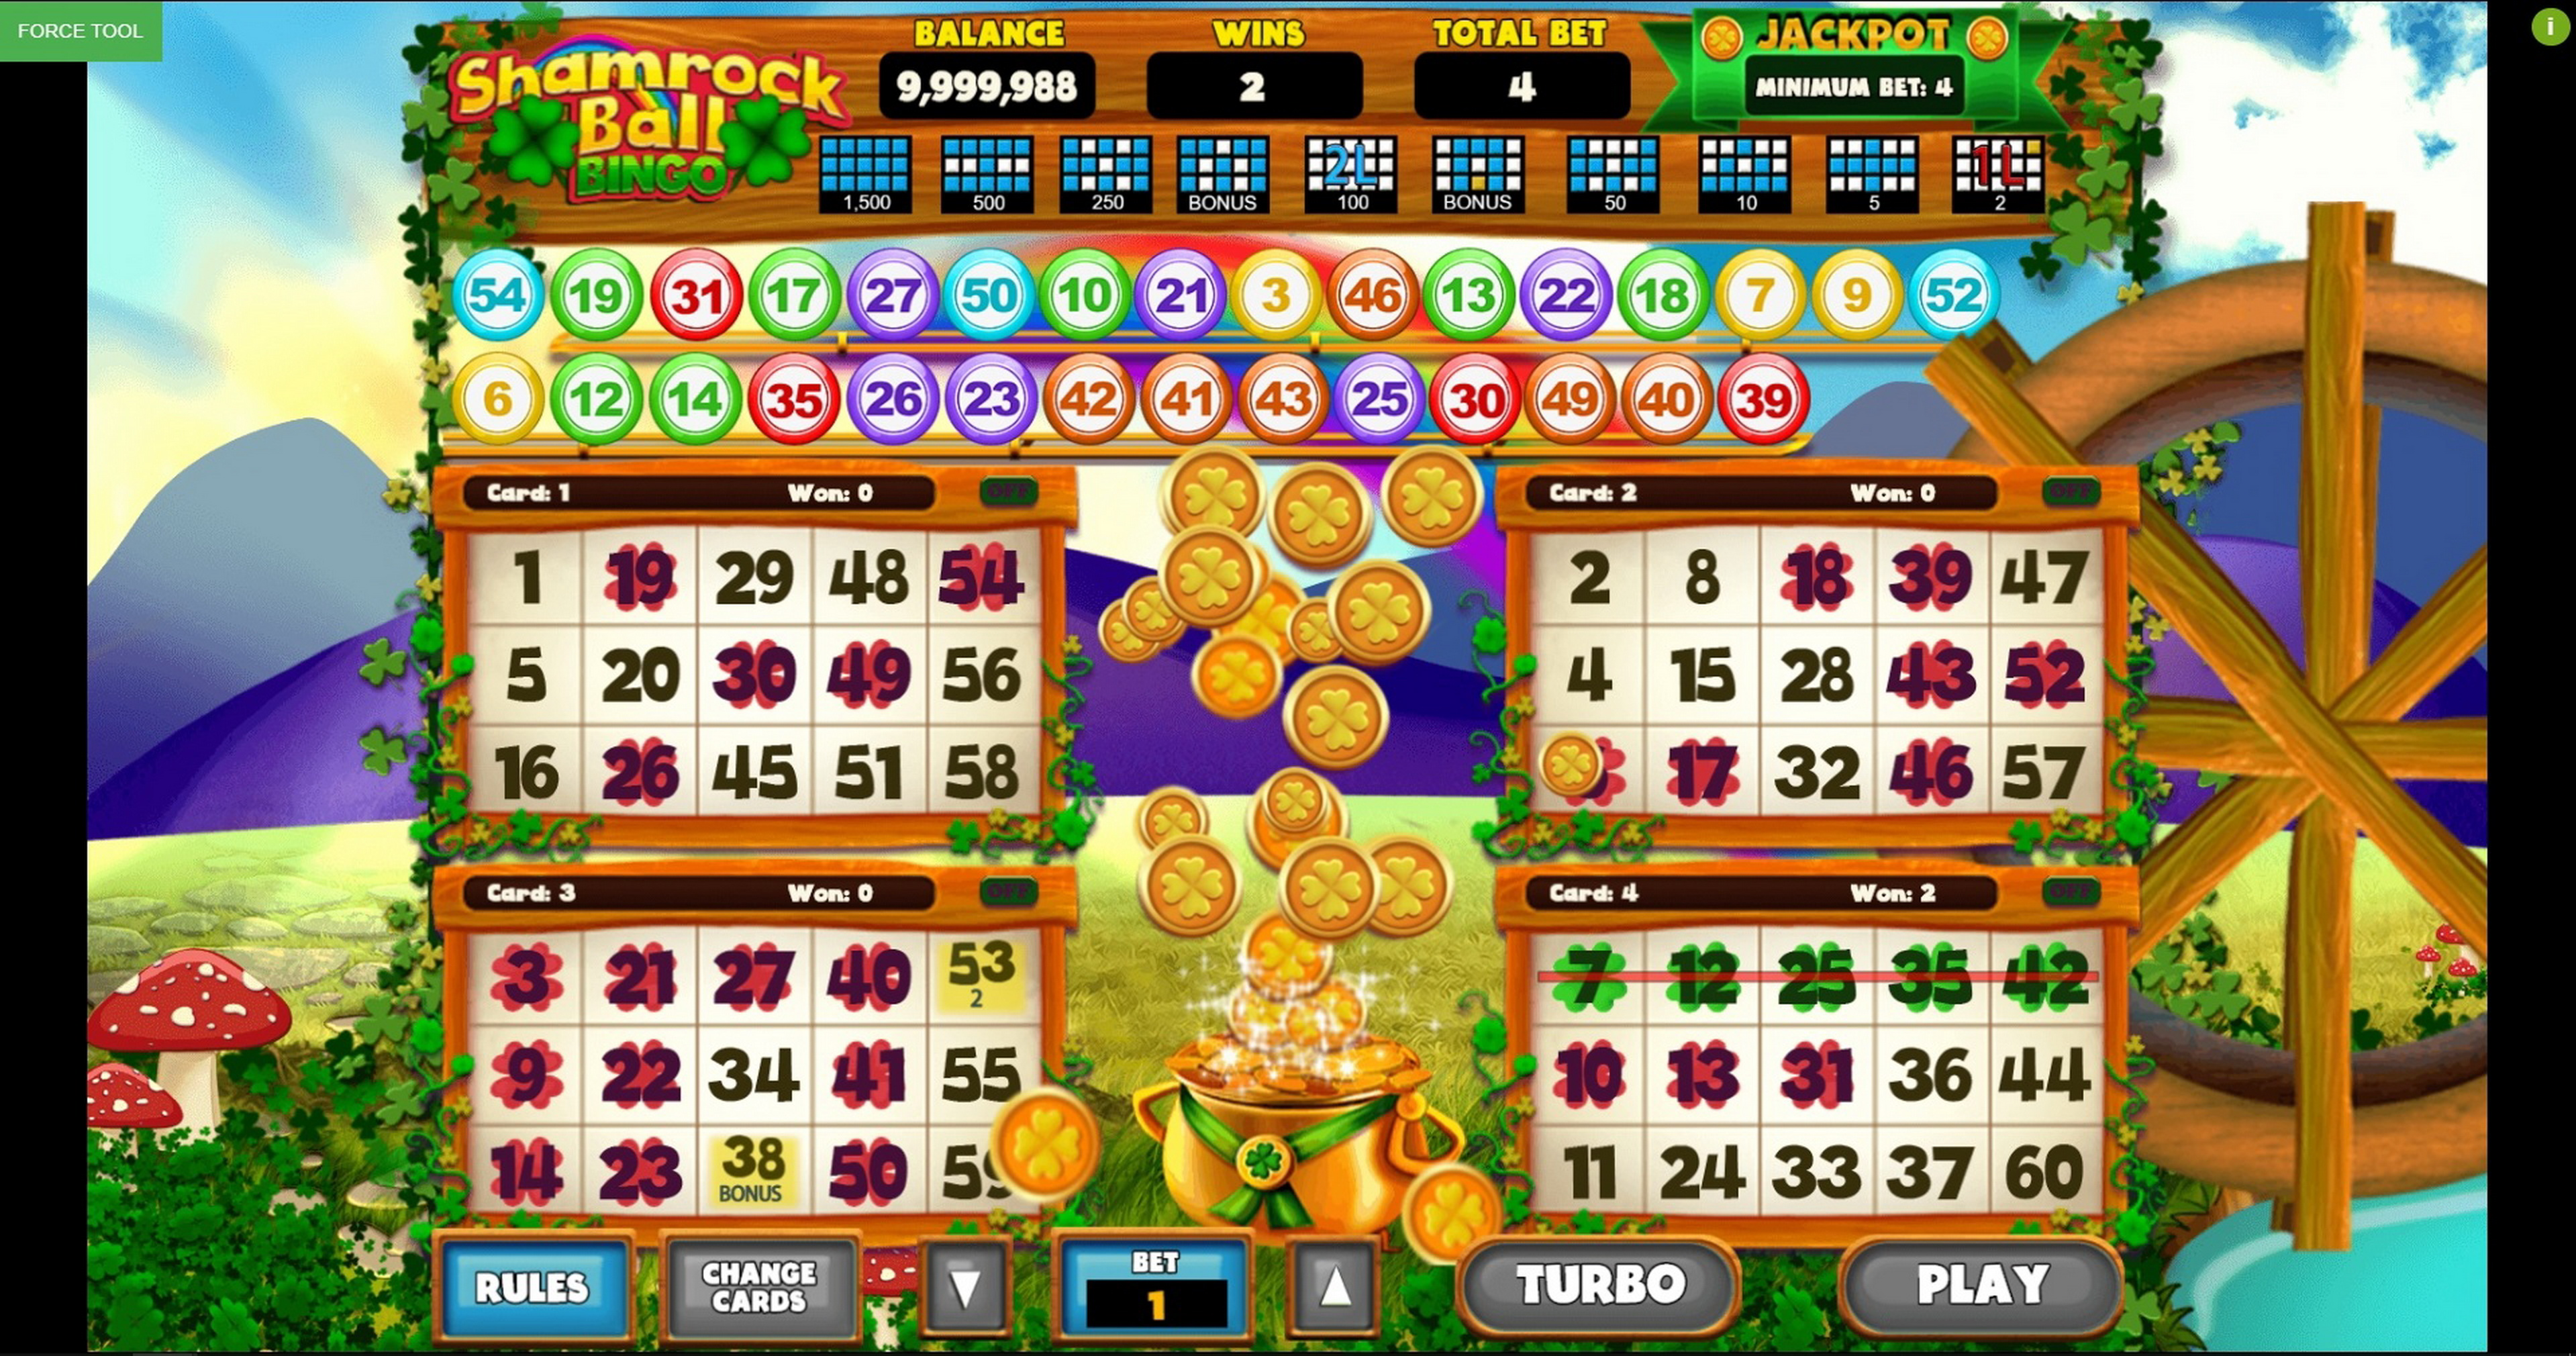 Win Money in Bingo Shamrock Ball Free Slot Game by Caleta Gaming